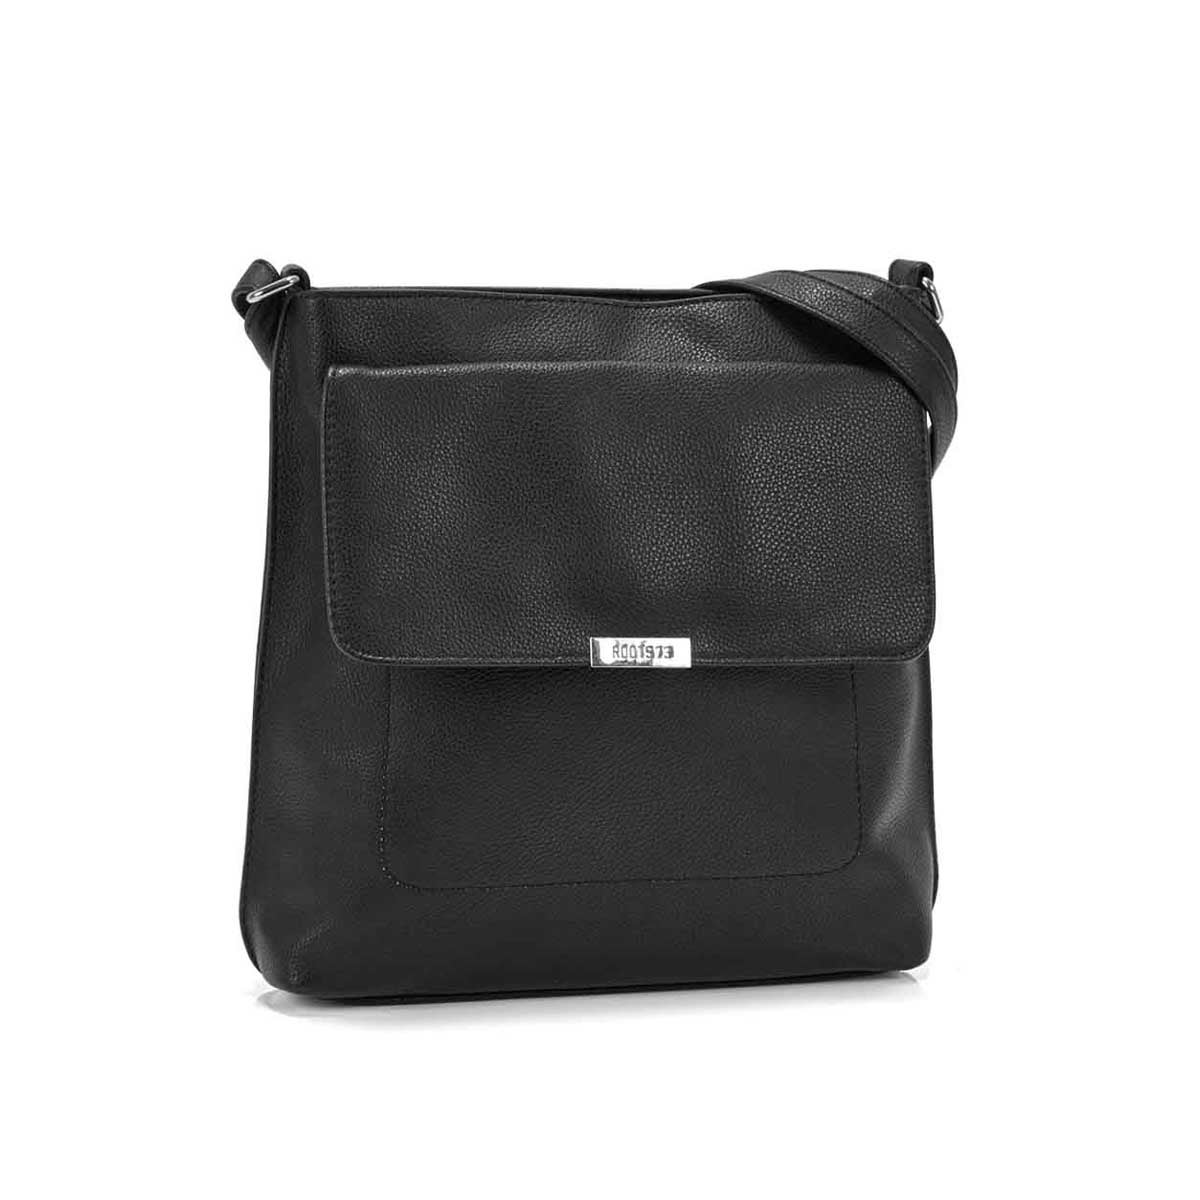 Women's R5431 black front flap crossbody bag